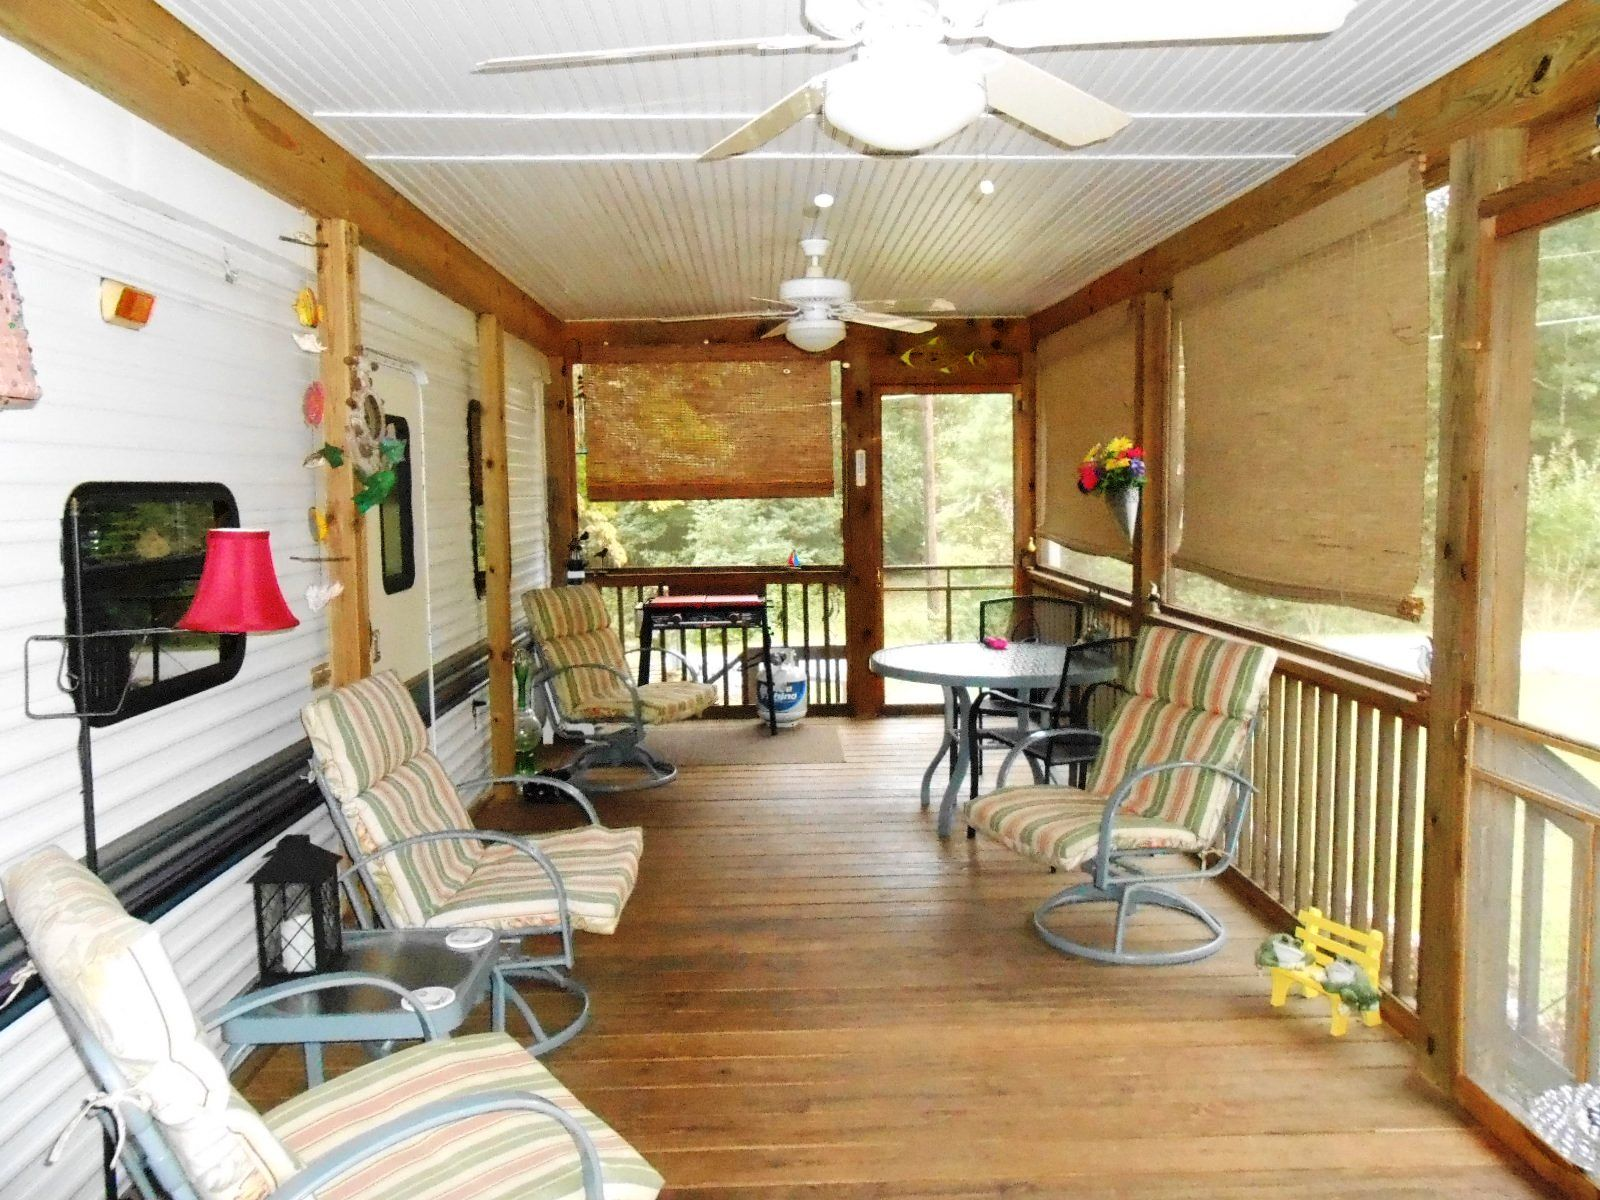 Living In A Travel Trailer Full Time >> camper covered porch - Google Search | Living in a camper full time | Pinterest | Covered ...